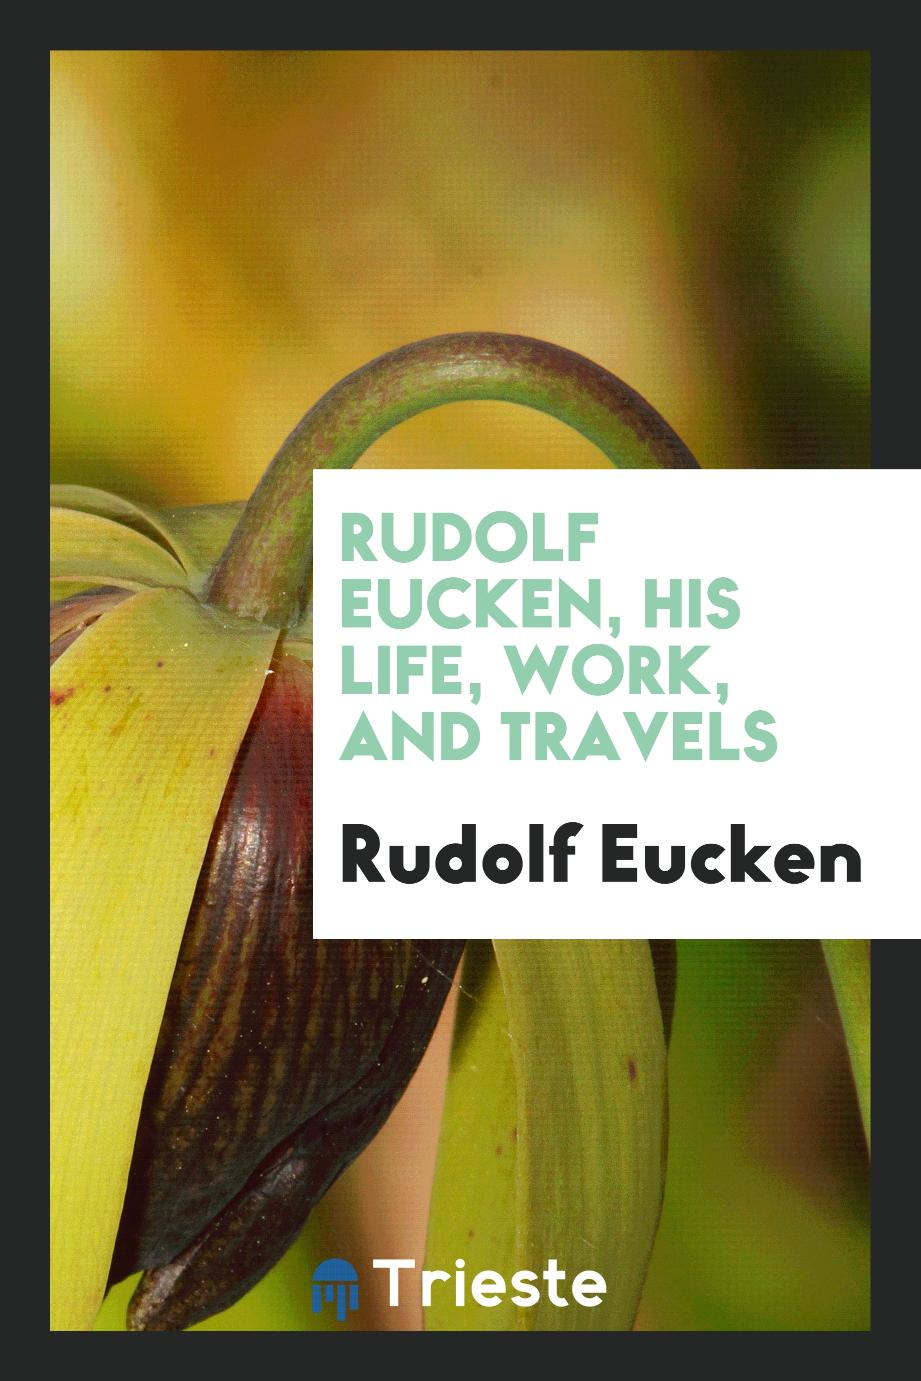 Rudolf Eucken, his life, work, and travels